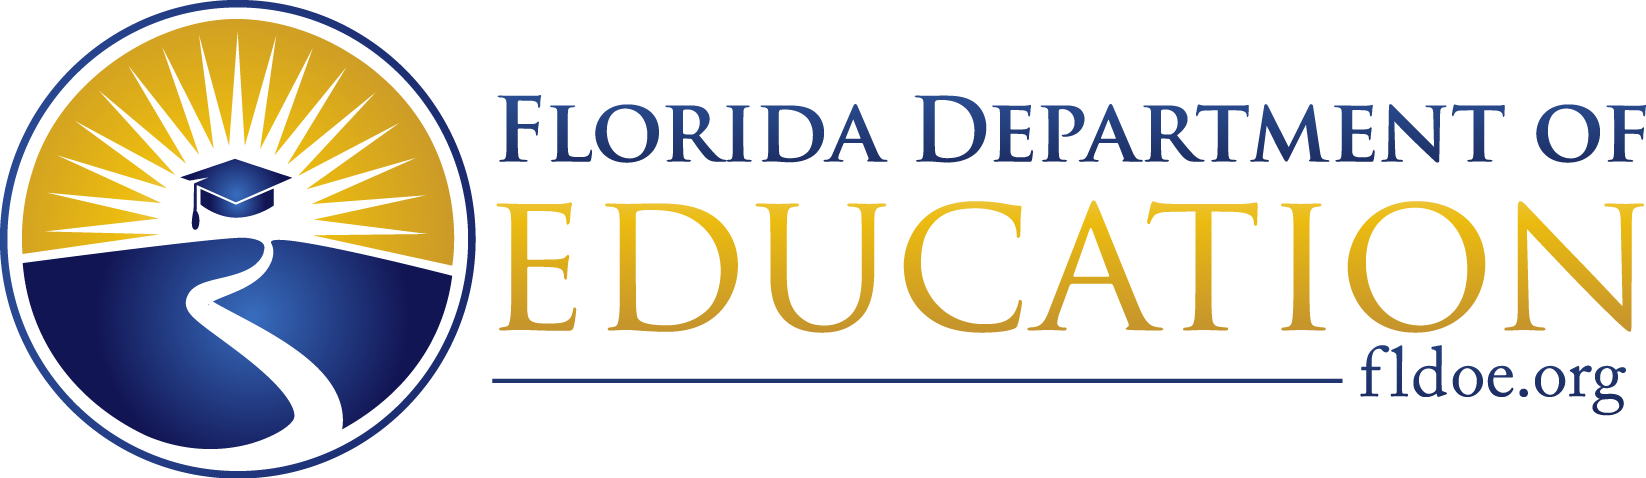 Florida Department of Education, logo